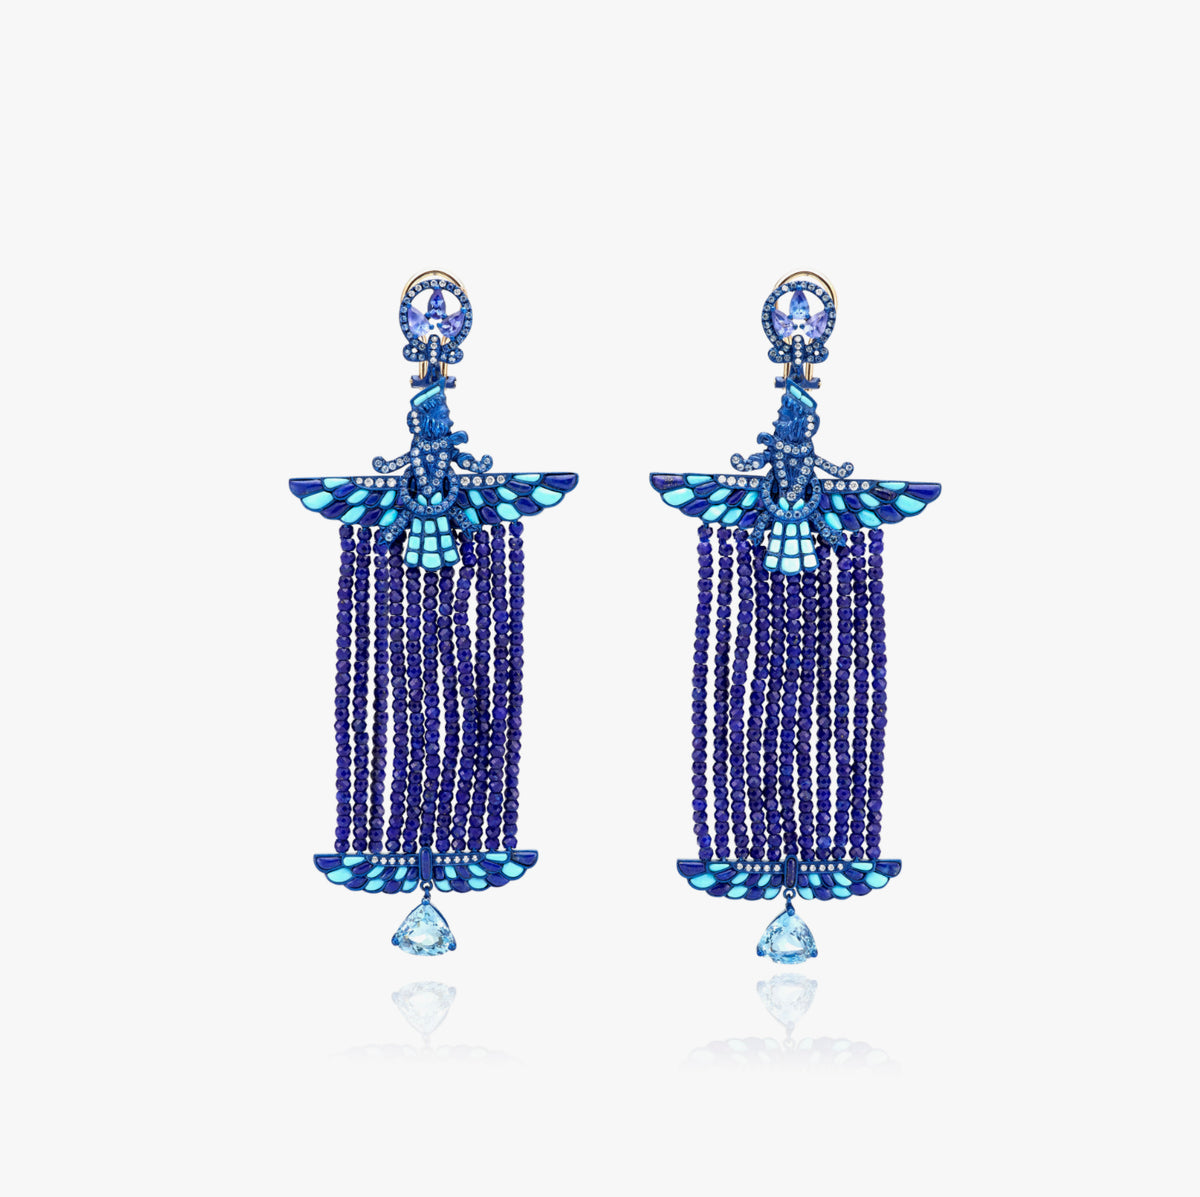 Caravans Lointaines Earrings